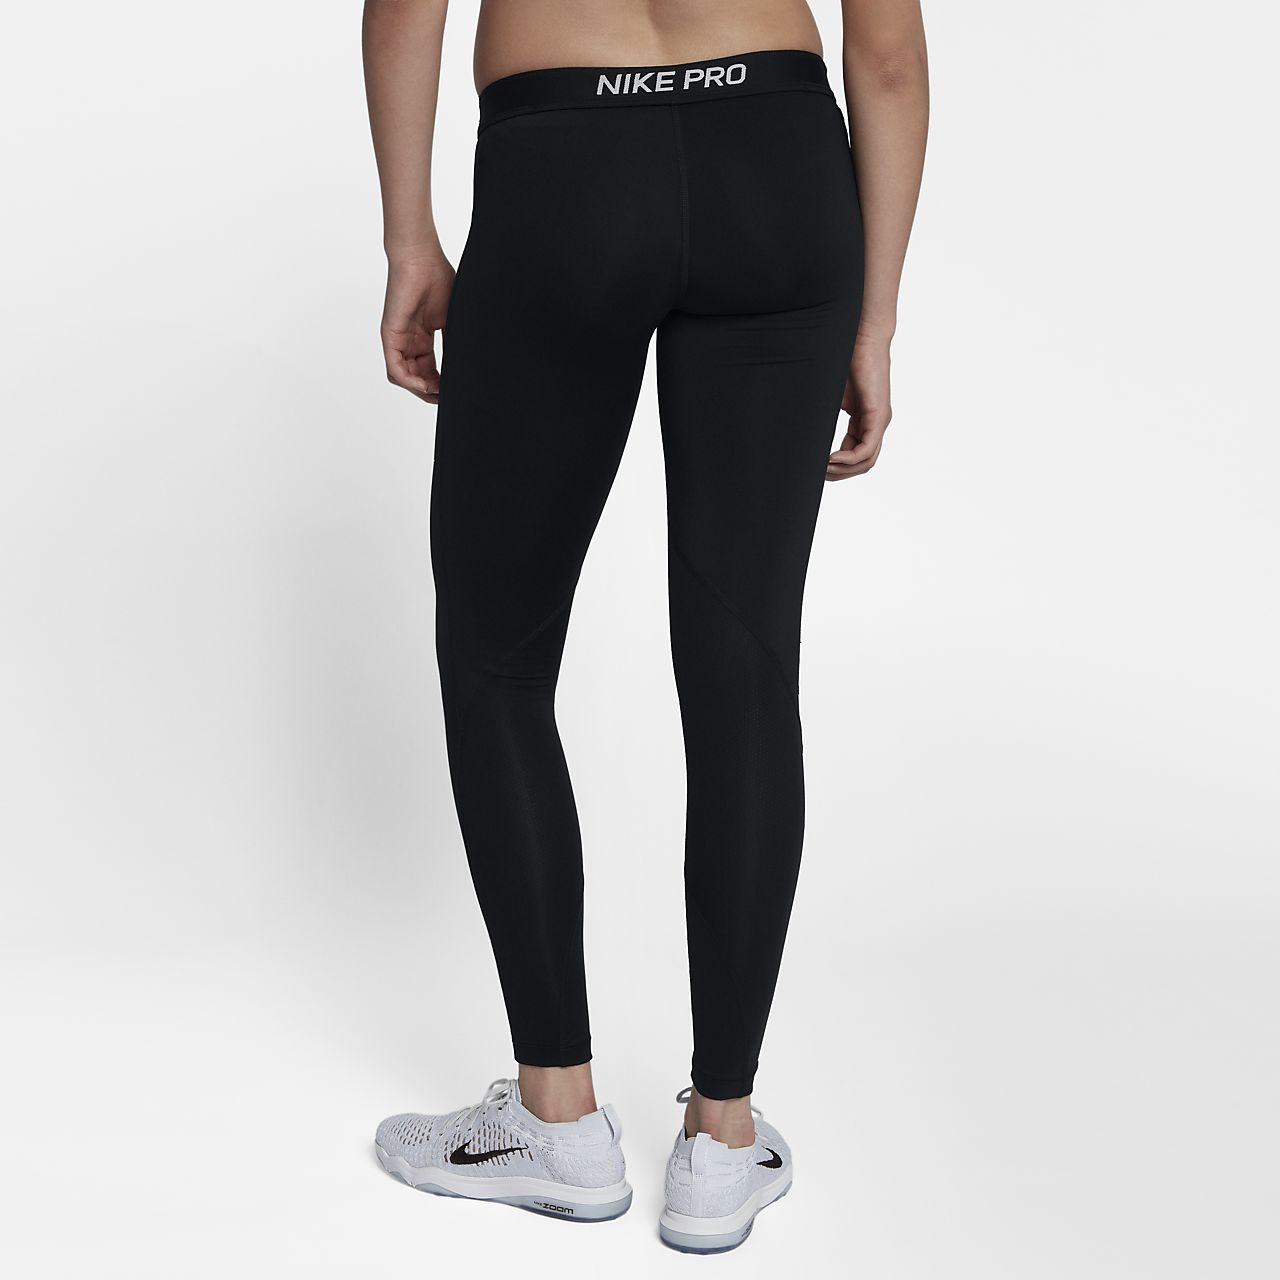 429f142e6776a3 Nike Pro Women's Mid-Rise Training Tights. Nike.com